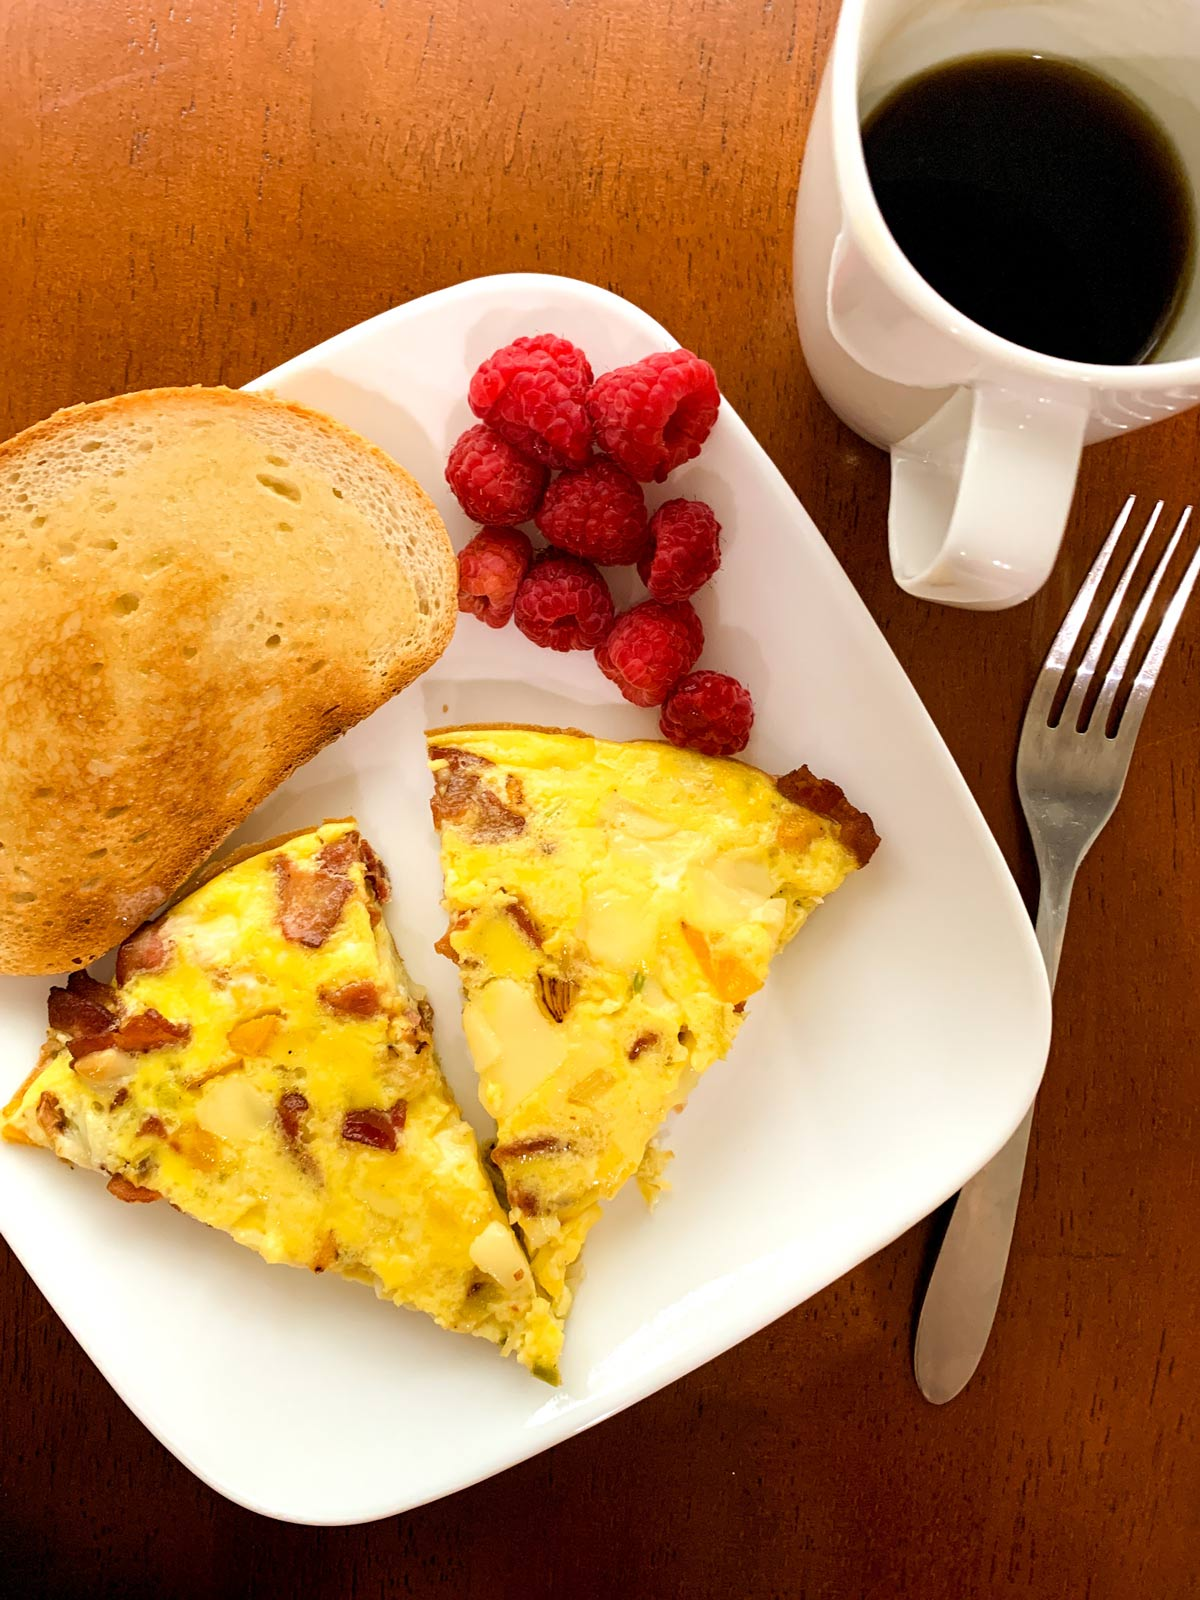 slices of frittata on a plate with toast and berries